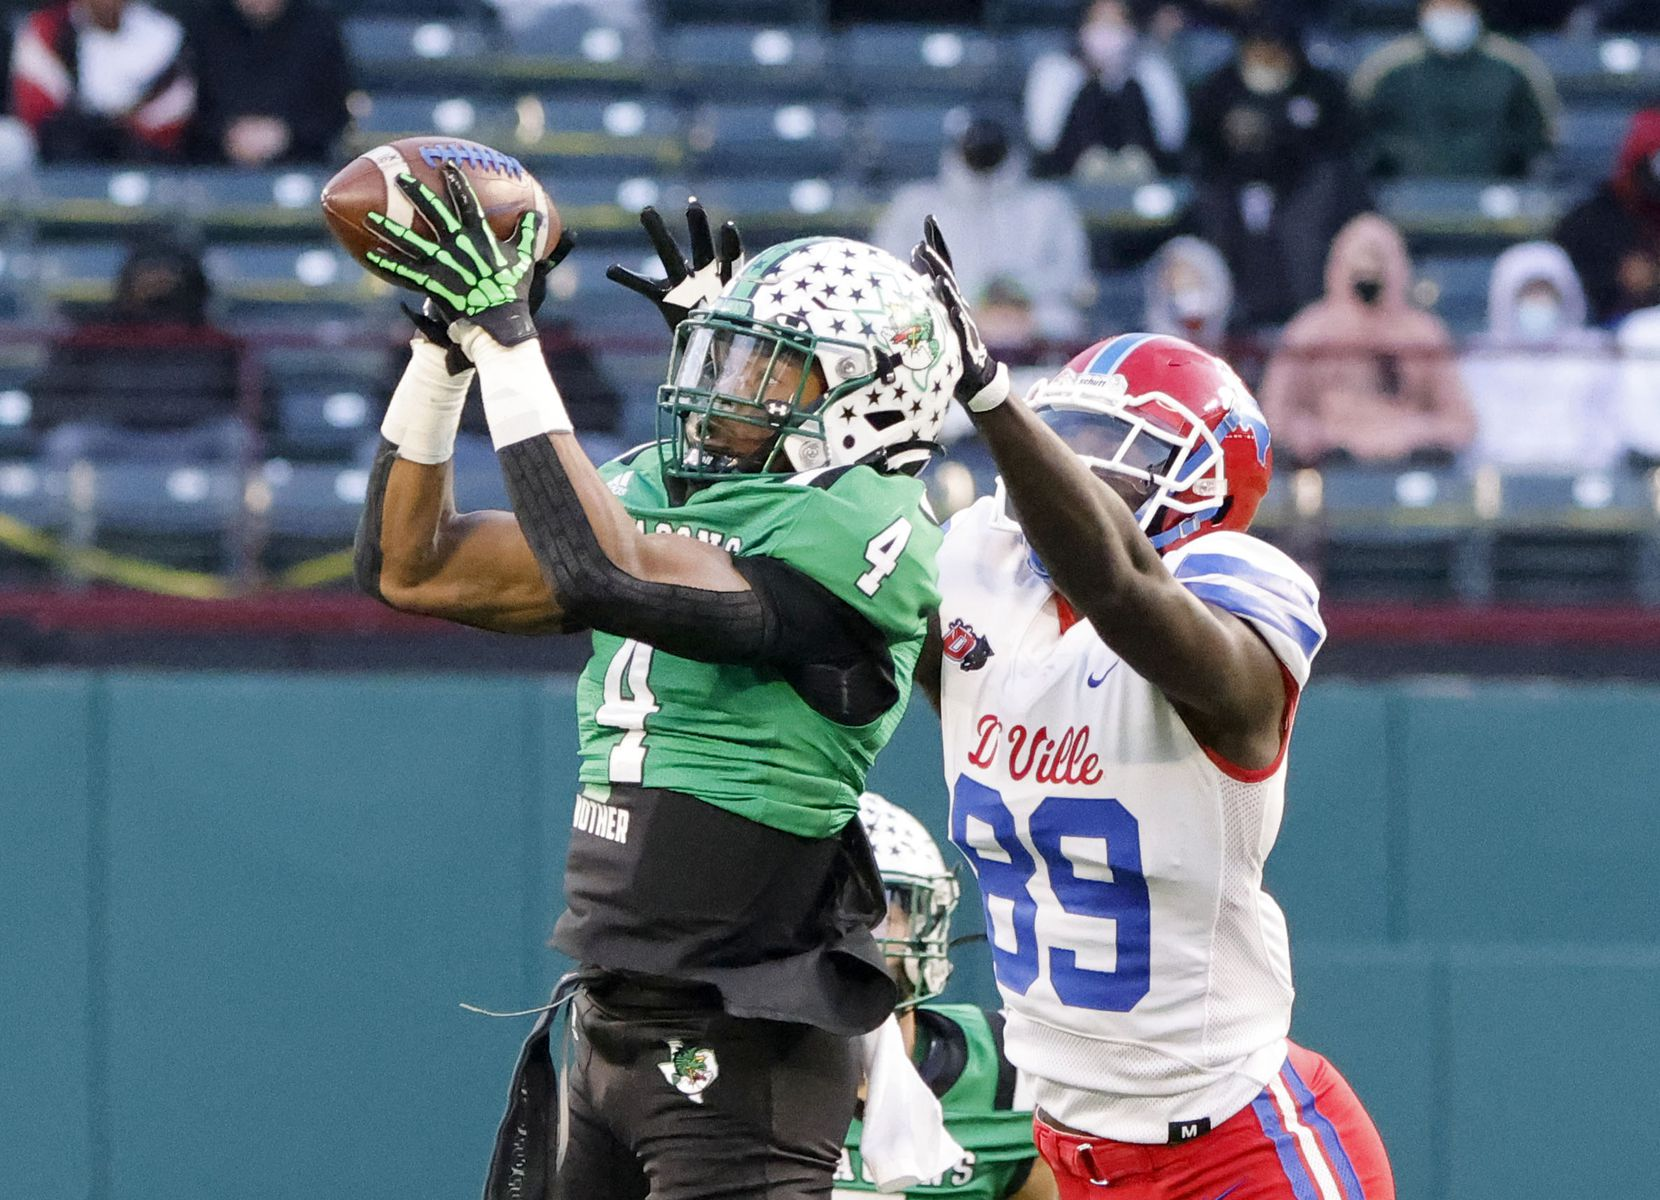 Southlake defender Cinque Williams (4) makes an interception on a pass intended for Duncanville's Jerrale Powers (89) during the Class 6A Division I state high school football semifinal in Arlington, Texas on Jan. 9, 2020. (Michael Ainsworth)